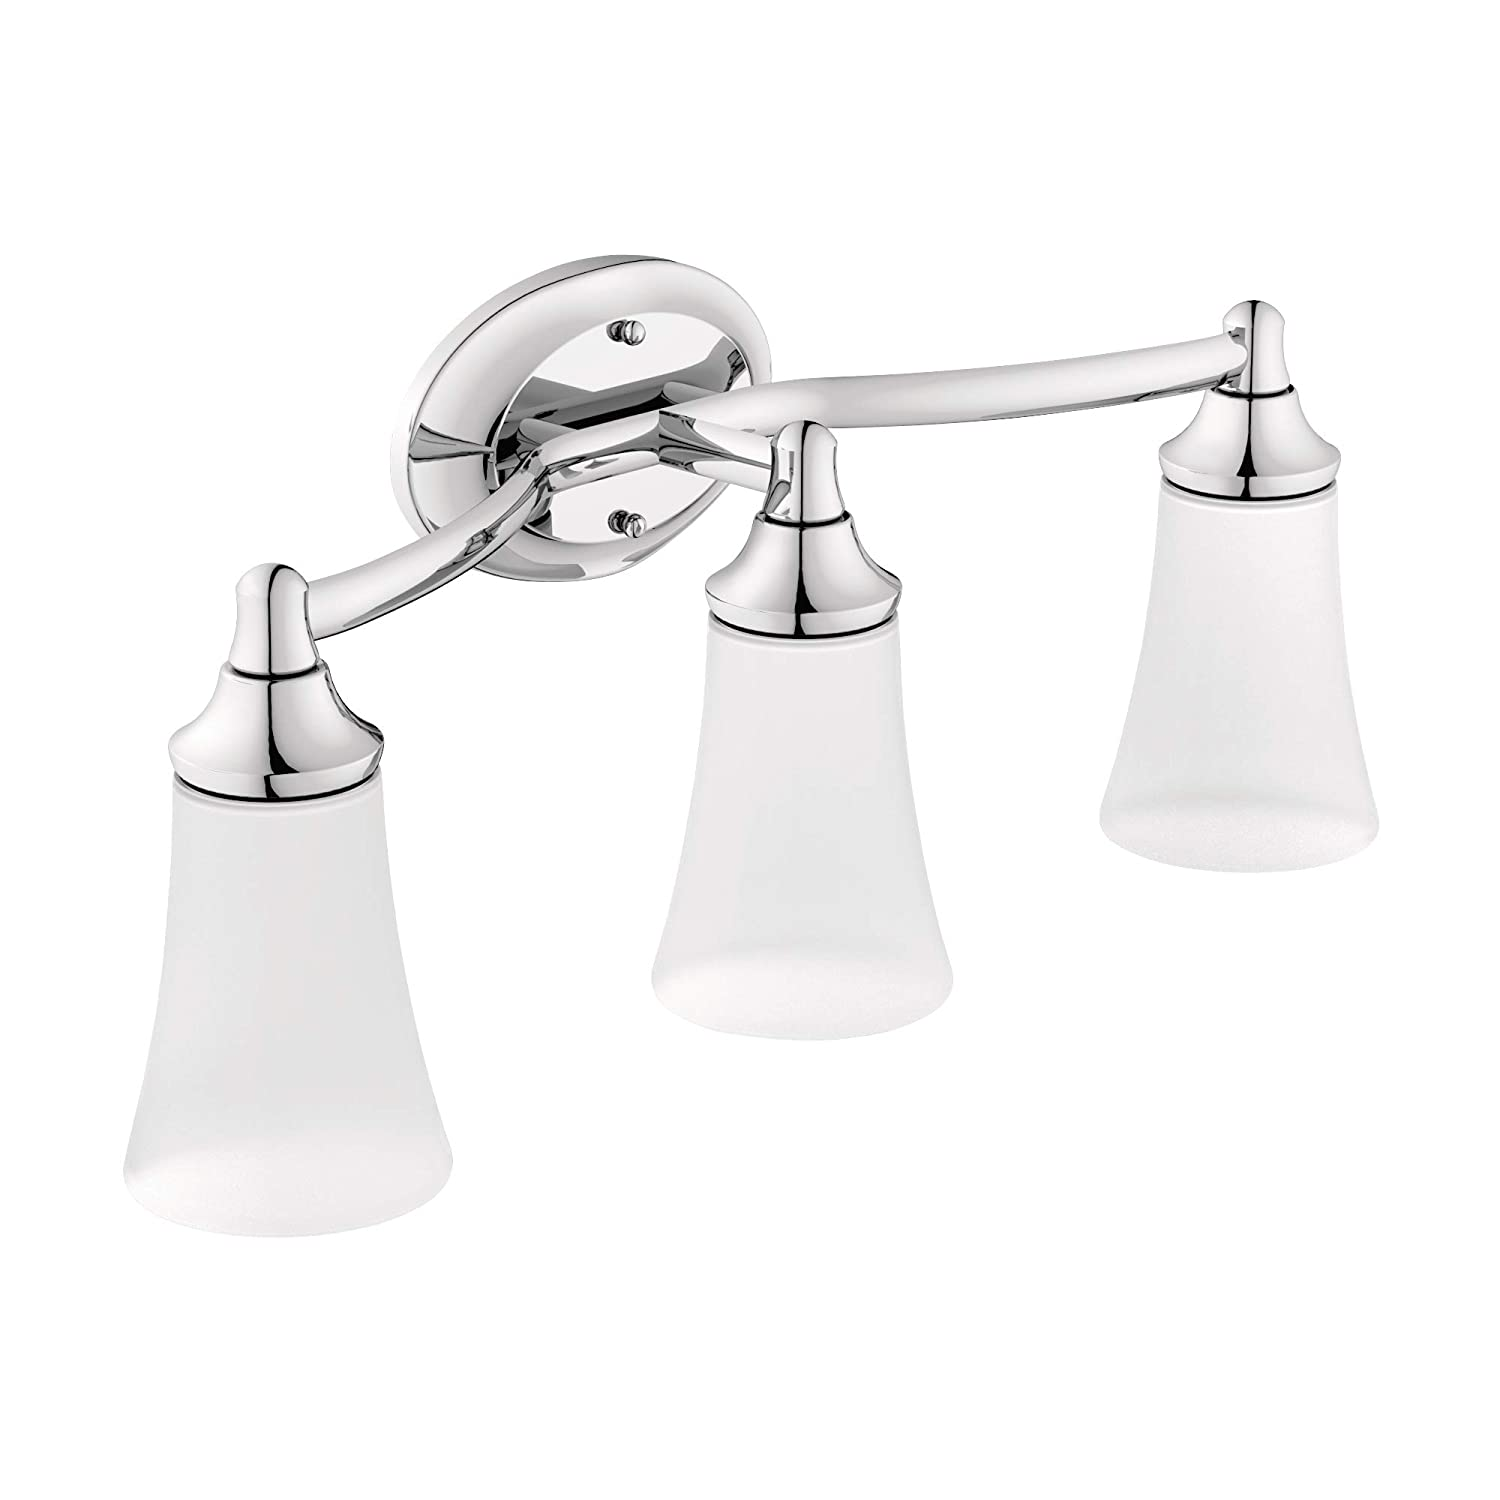 Moen YB2863CH Eva 3-Light Dual-Mount Bath Bathroom Vanity Fixture with Frosted Glass, Chrome